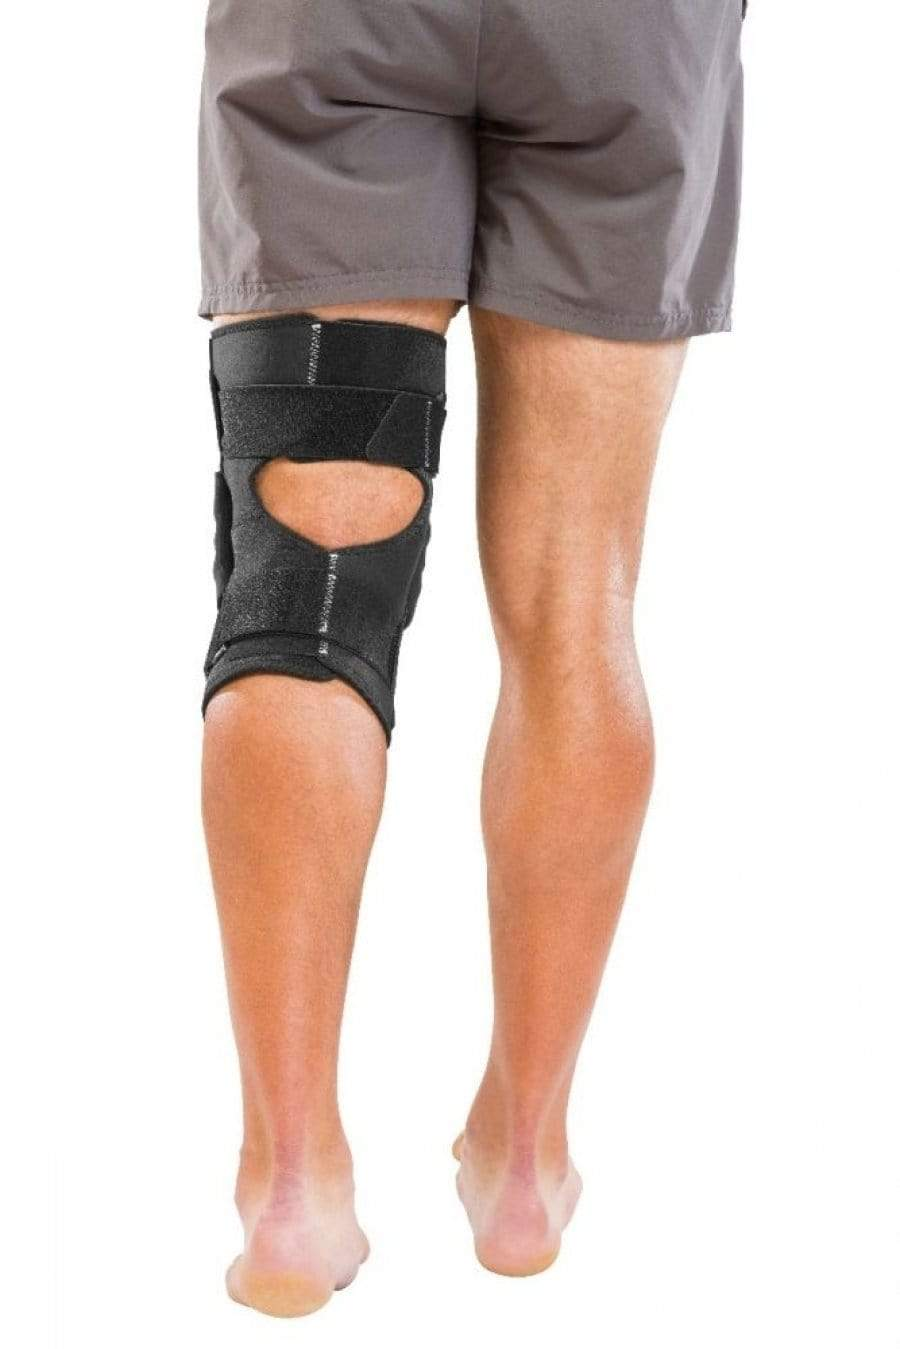 MUE5313 METAL TRIAXIAL HINGED WRAPAROUND KNEE BRACE WITH OPEN BACK TO PREVENT BUNCHING